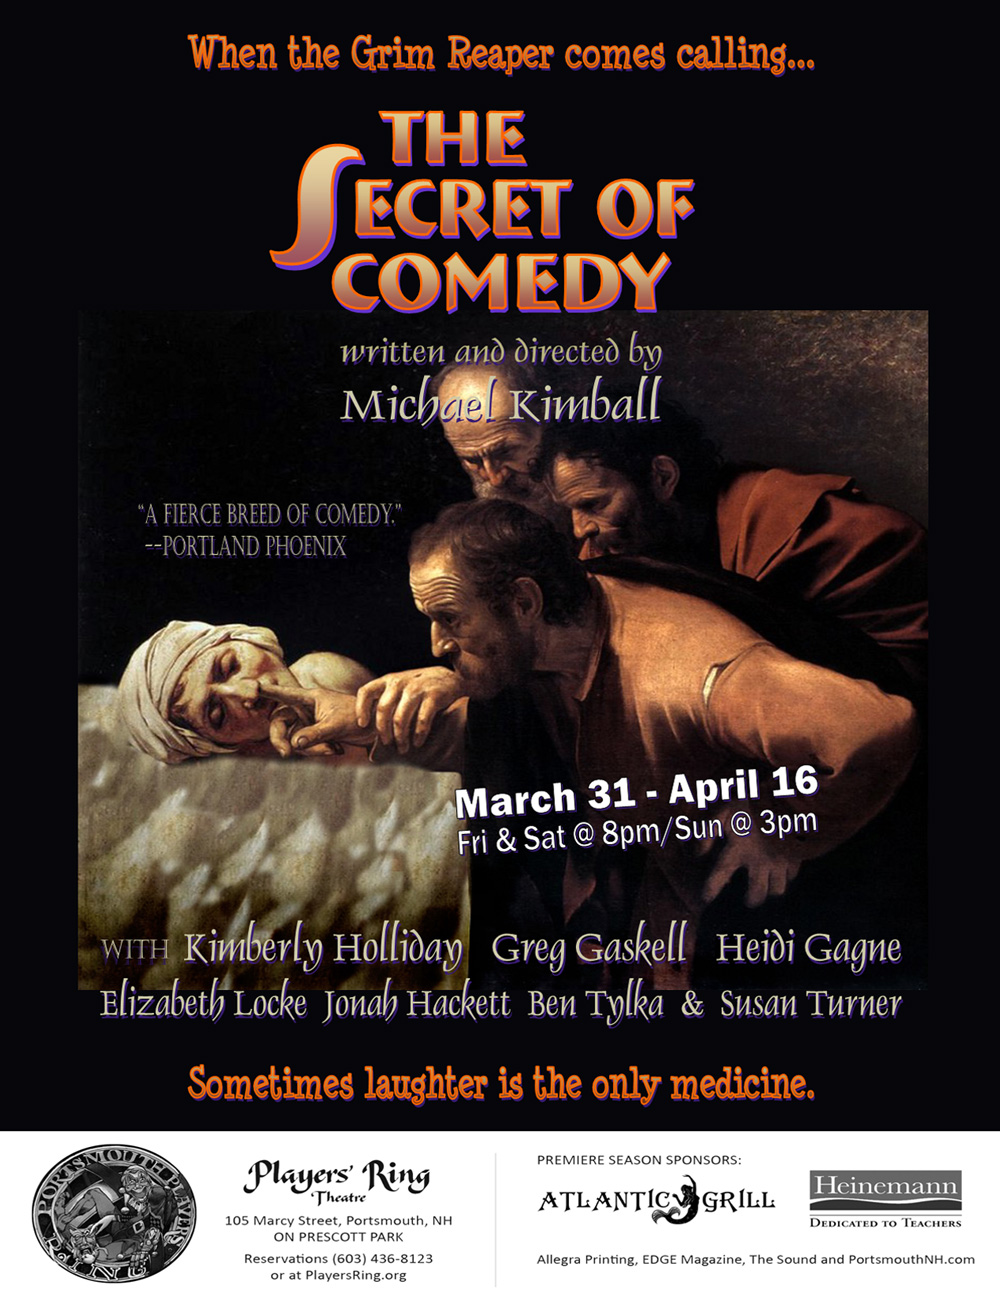 The-Secret-of-Comedy-Theater-Production-Flyer-2017.jpg